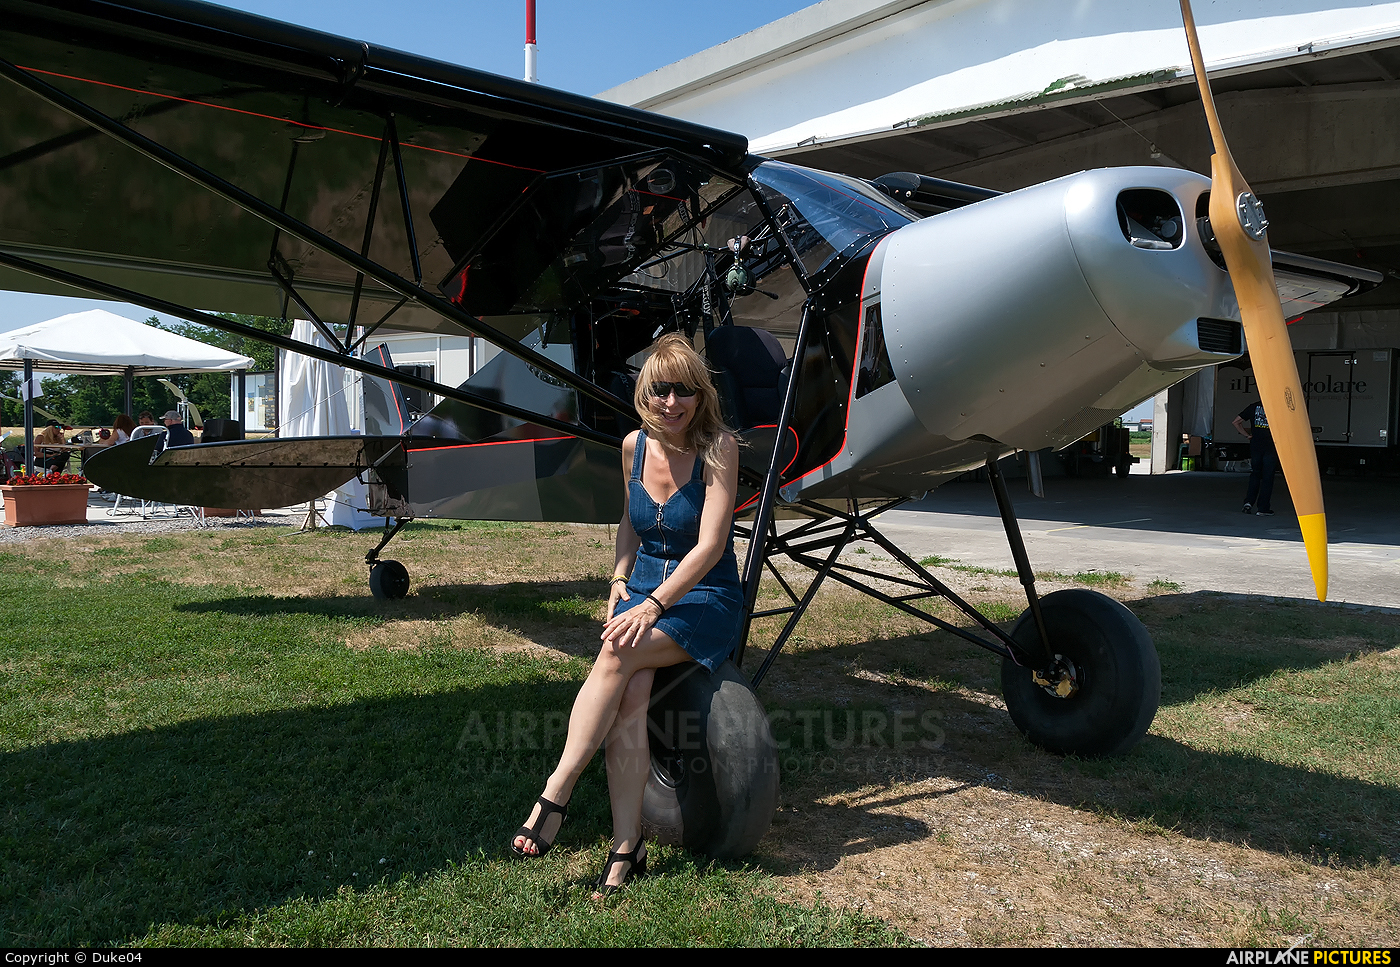 - Aviation Glamour I-C579 aircraft at Off Airport - Italy